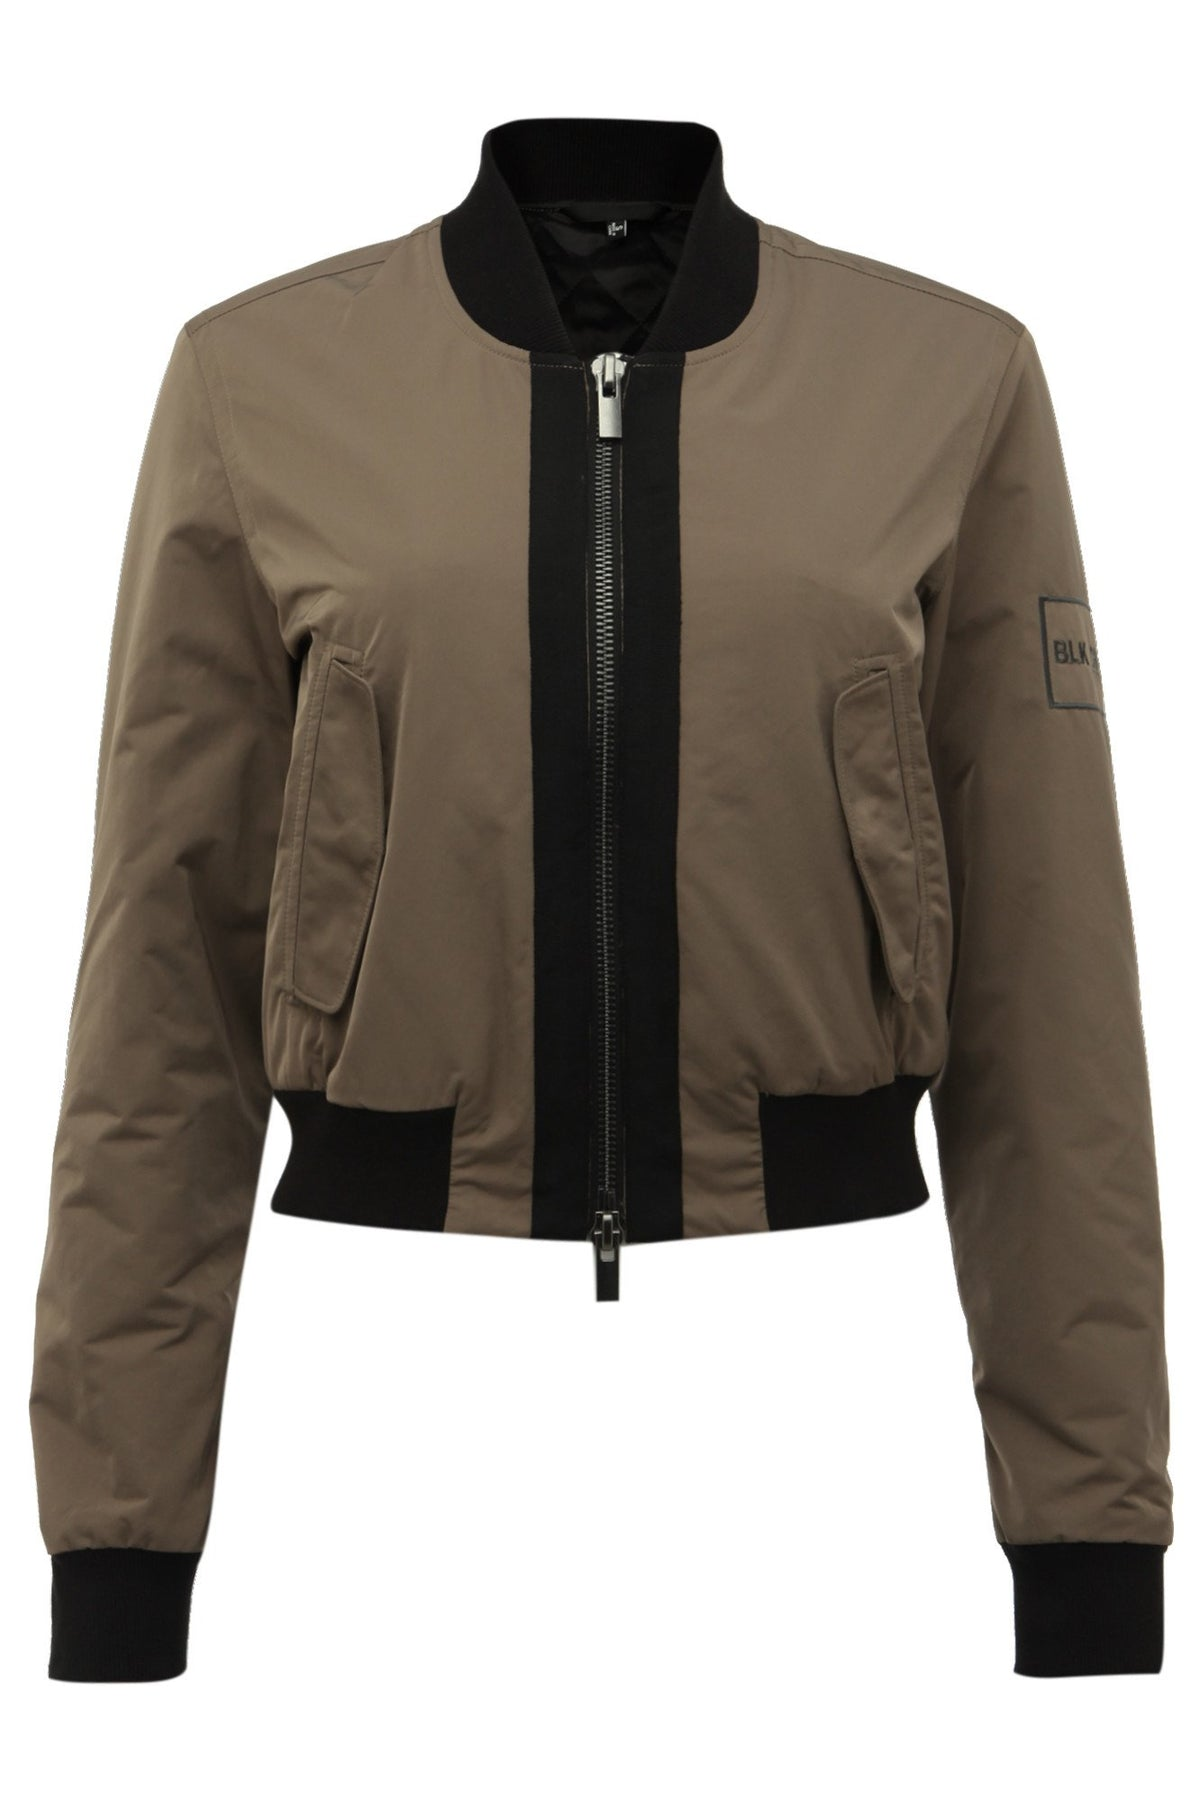 Womens Jacket 26 Taupe